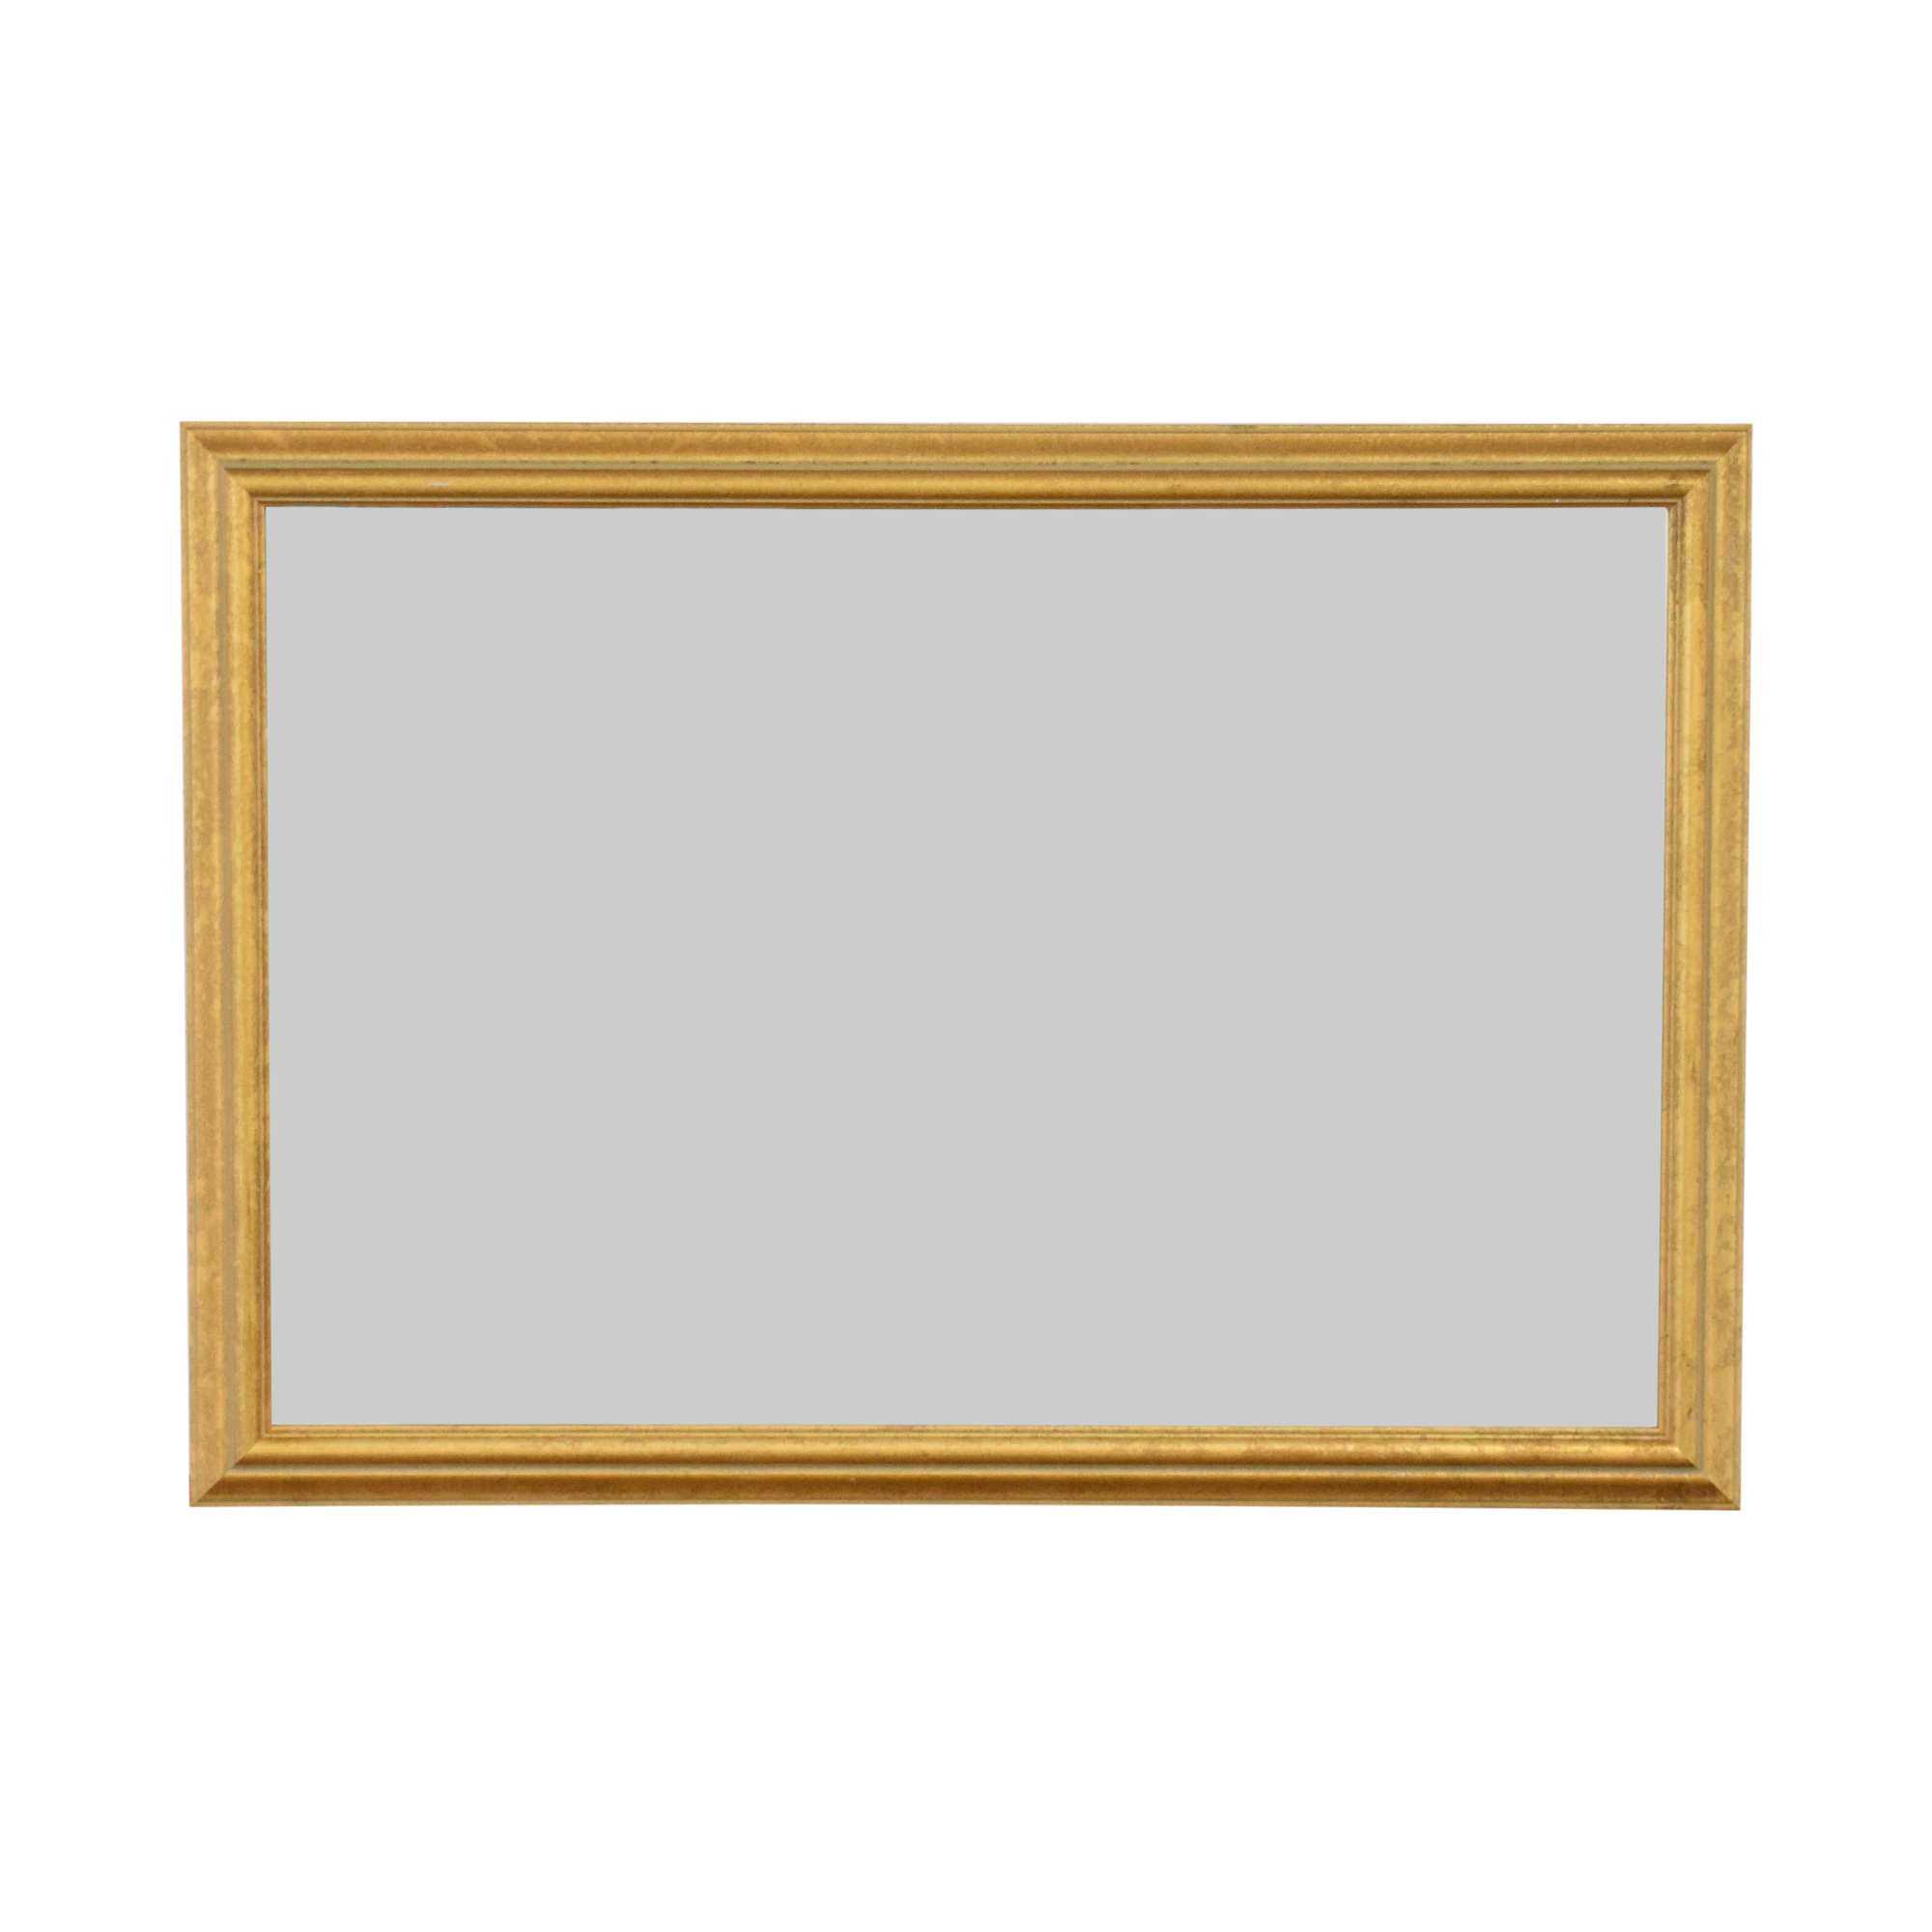 Uttermost Uttermost Framed Wall Mirror ct